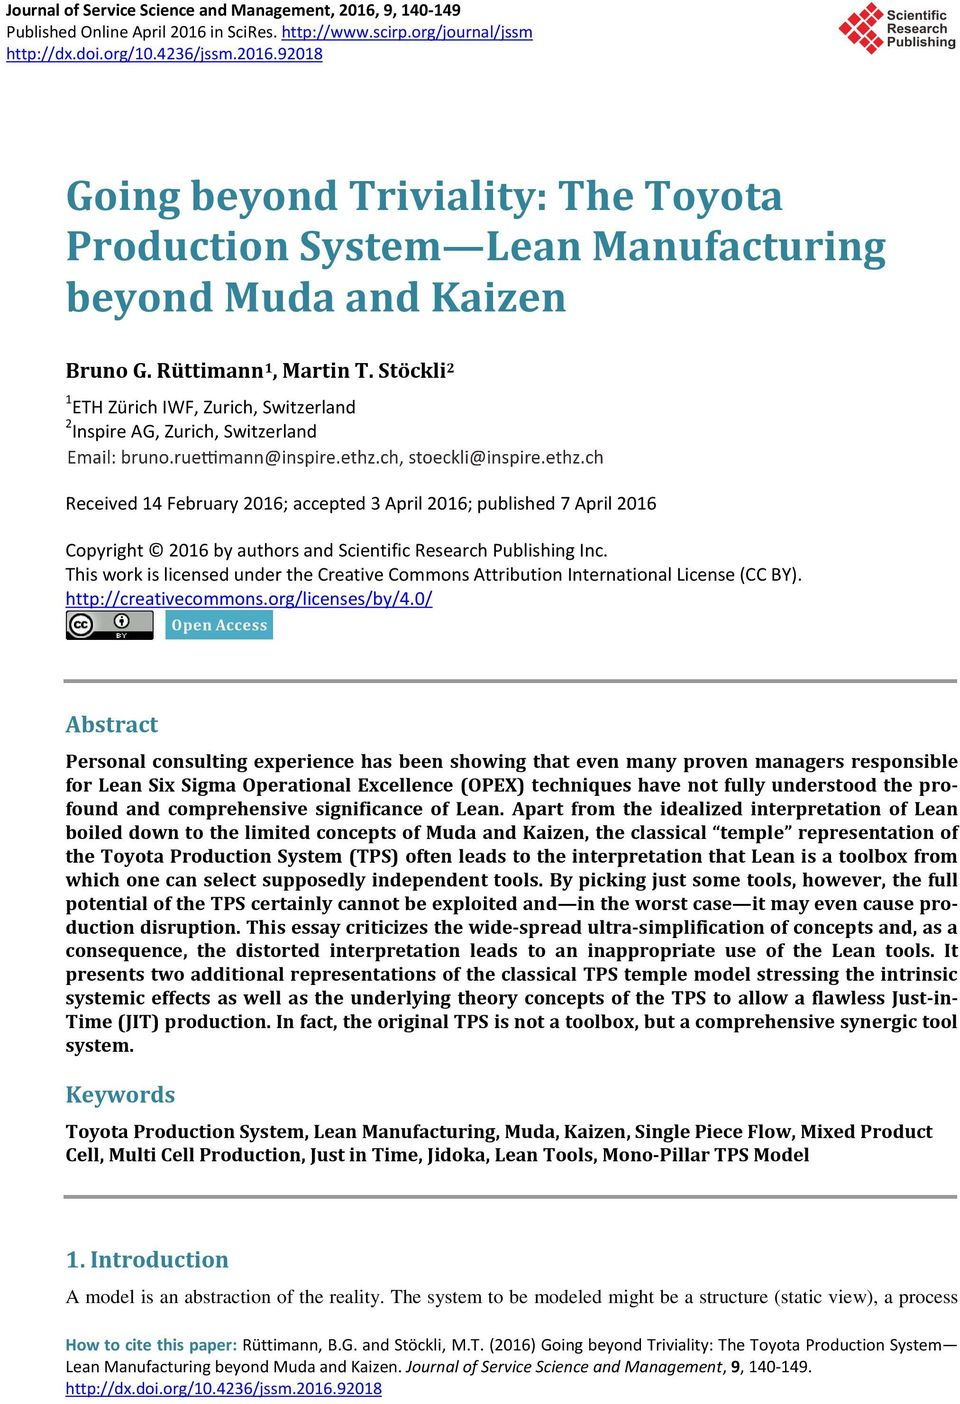 toyota production system essay The toyota production system essays: over 180,000 the toyota production system essays, the toyota production system term papers, the toyota production system research paper, book reports 184 990 essays, term and research papers available for unlimited access.